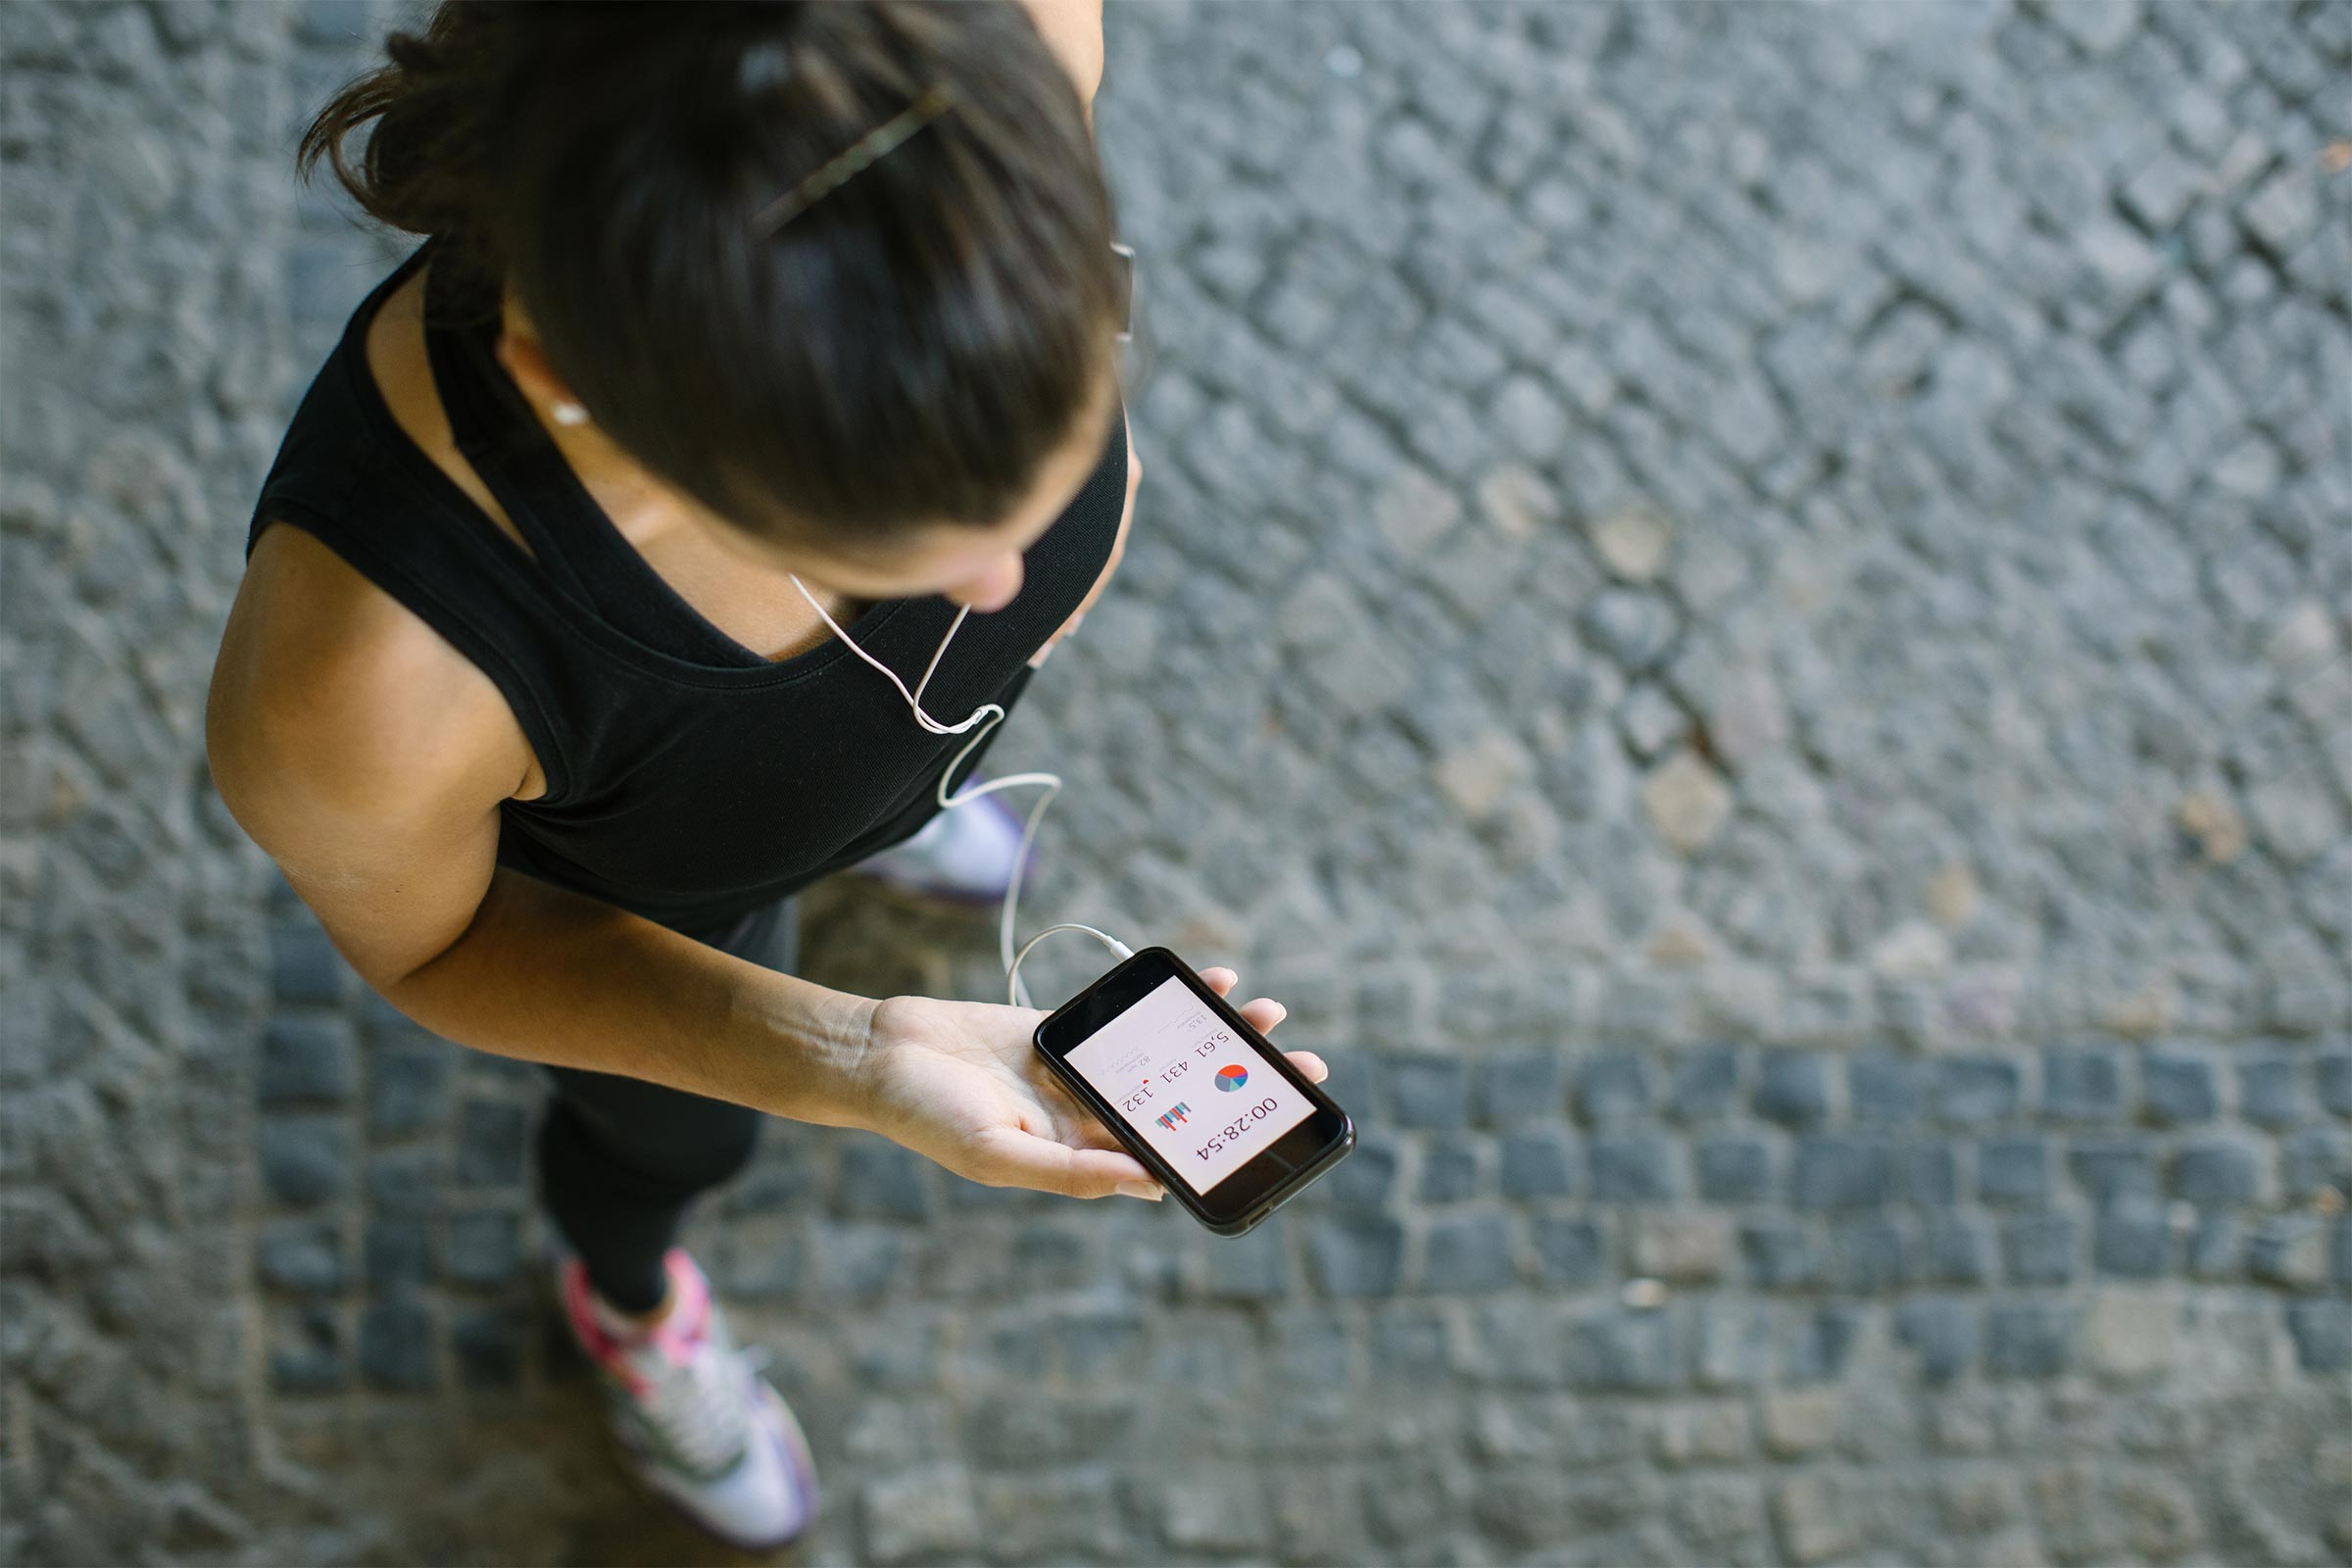 Digitising health prescription in a world of wearables